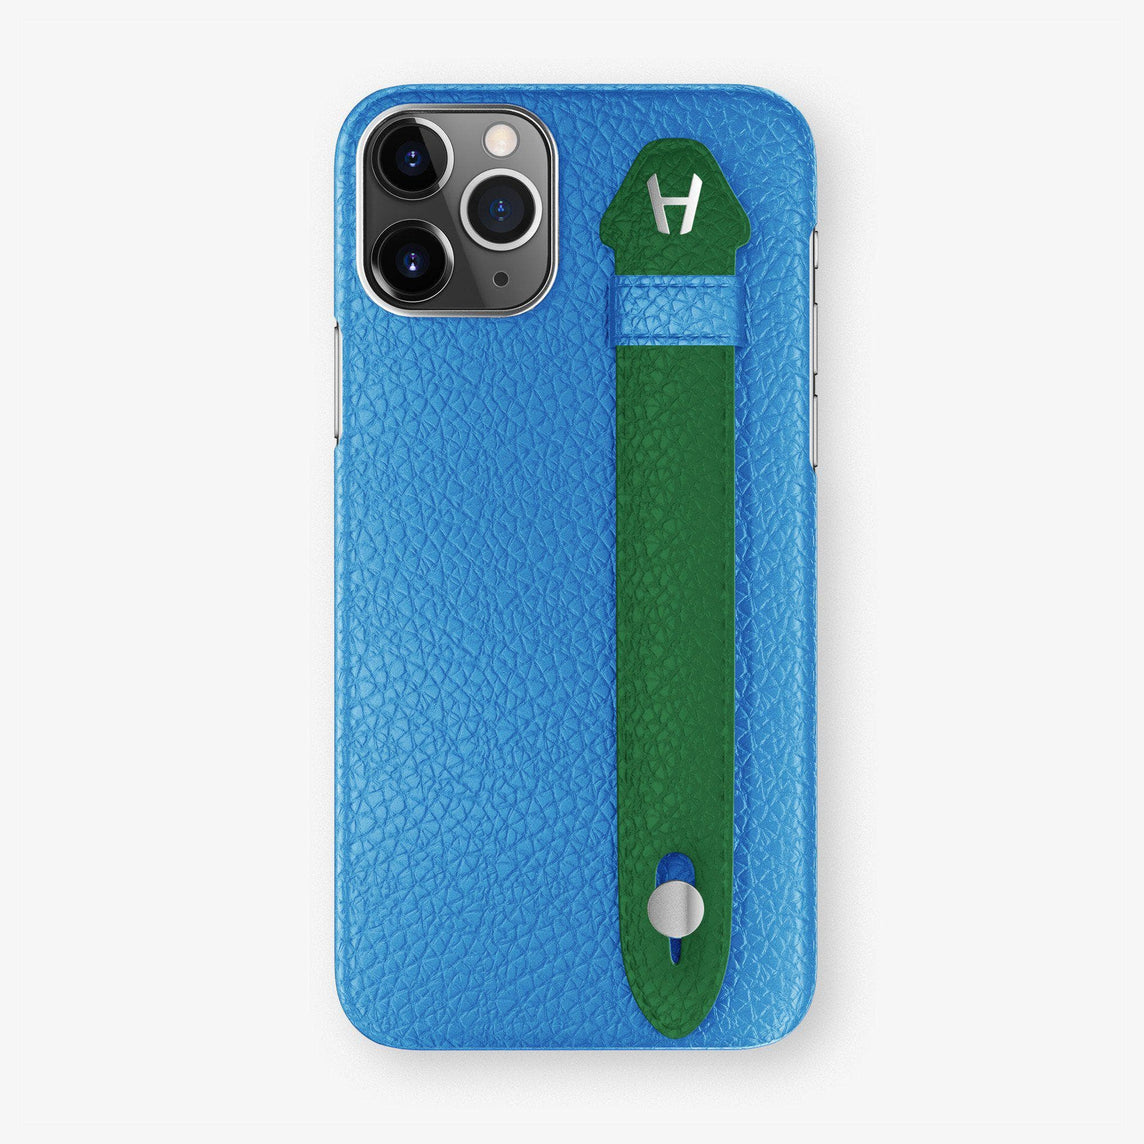 Calfskin Finger Case iPhone 11 Pro Max | Blue Lagoon/Green - Stainless Steel